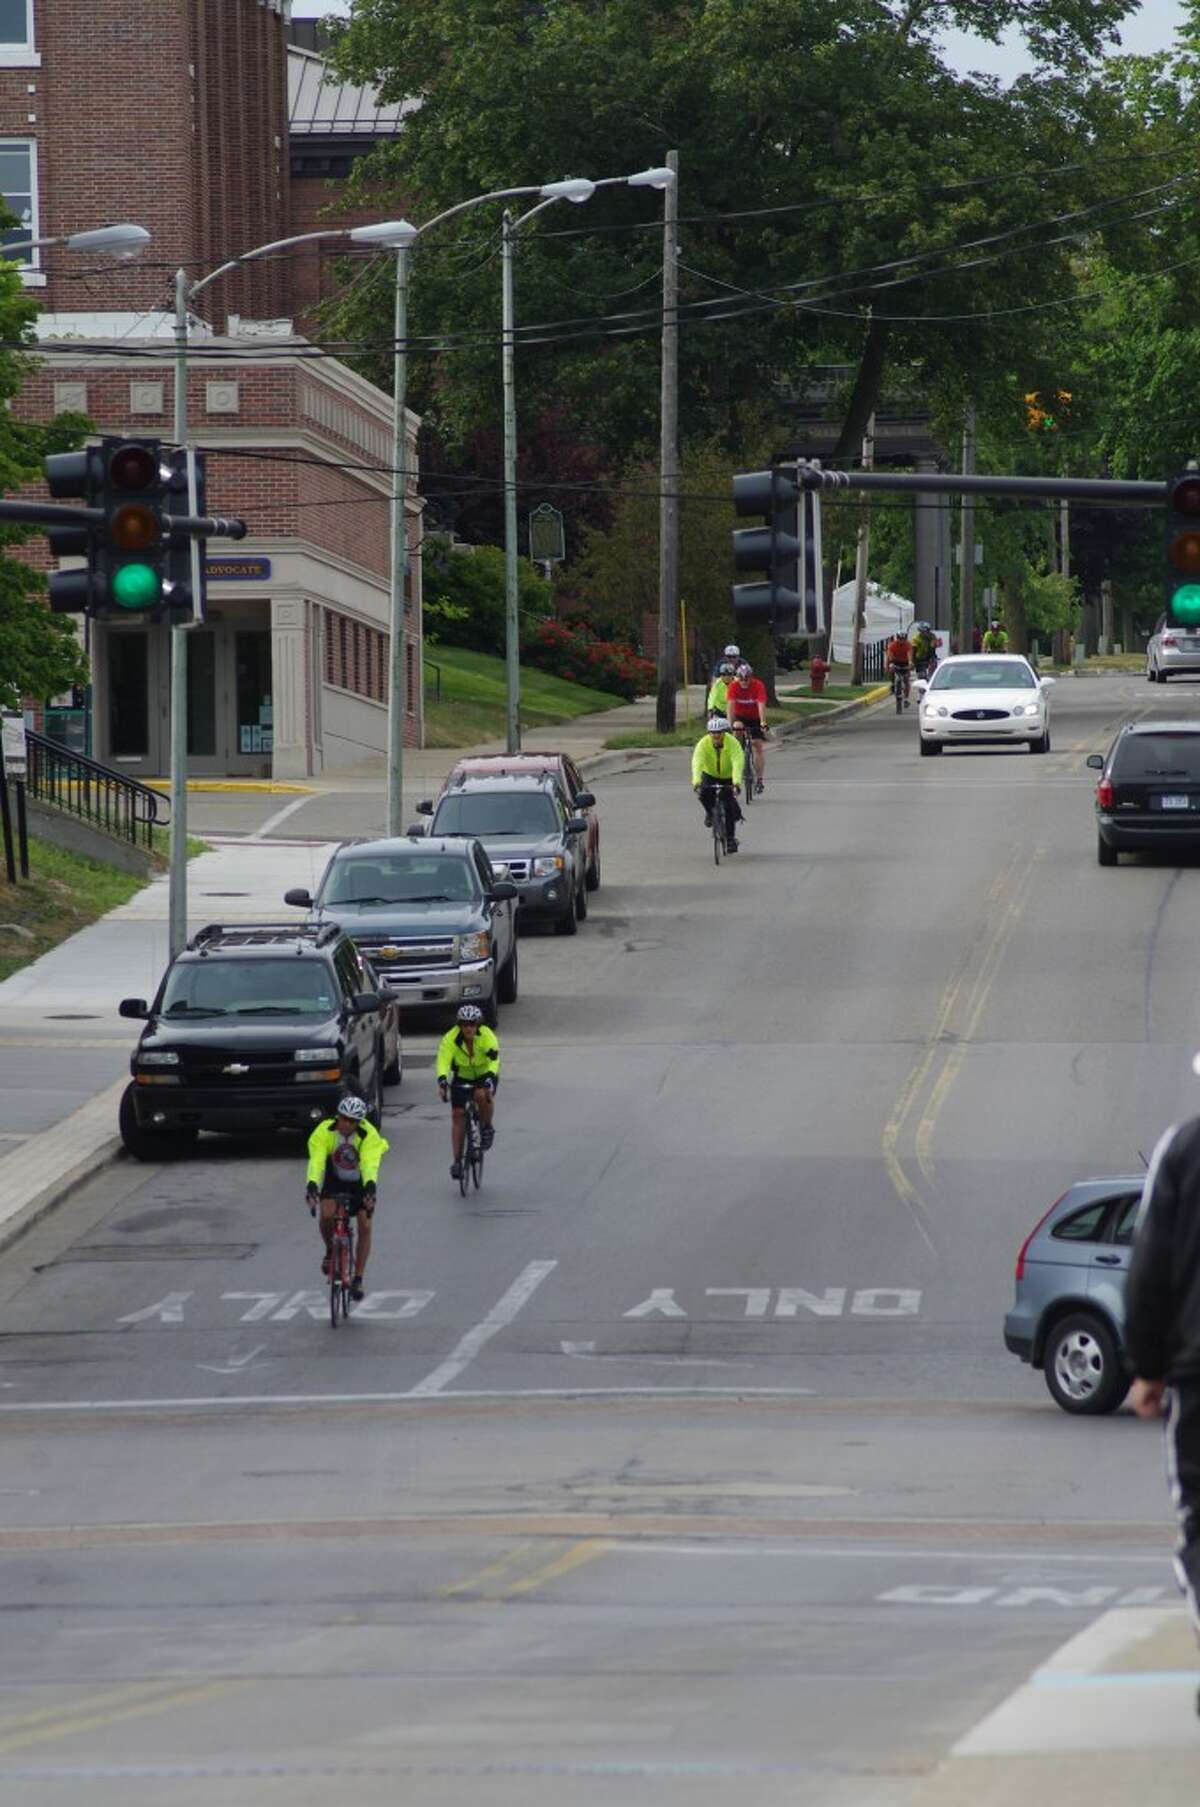 A steady stream of bicyclists traveled through Manistee on Monday as part of the League of Michigan Bicyclists 27th Annual Shoreline West Bicycle Tour. They enjoyed rolling down the hill on Maple Street toward River Street. (Dave Yarnell/News Advocate)